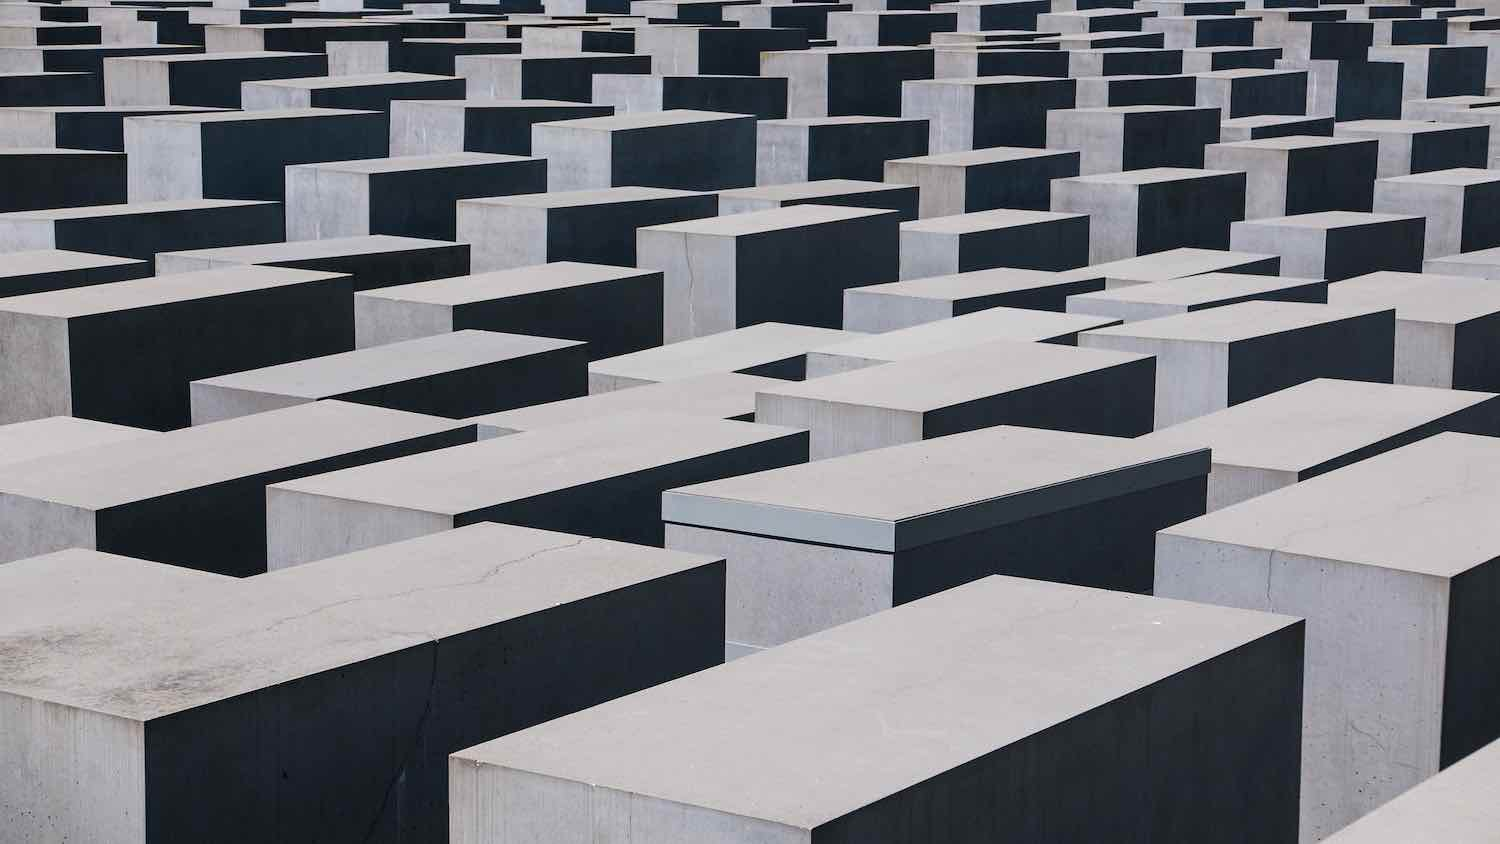 It's no time to forget! Berlin Holocaust Memorial - Photo by Wynand van Poortvliet.